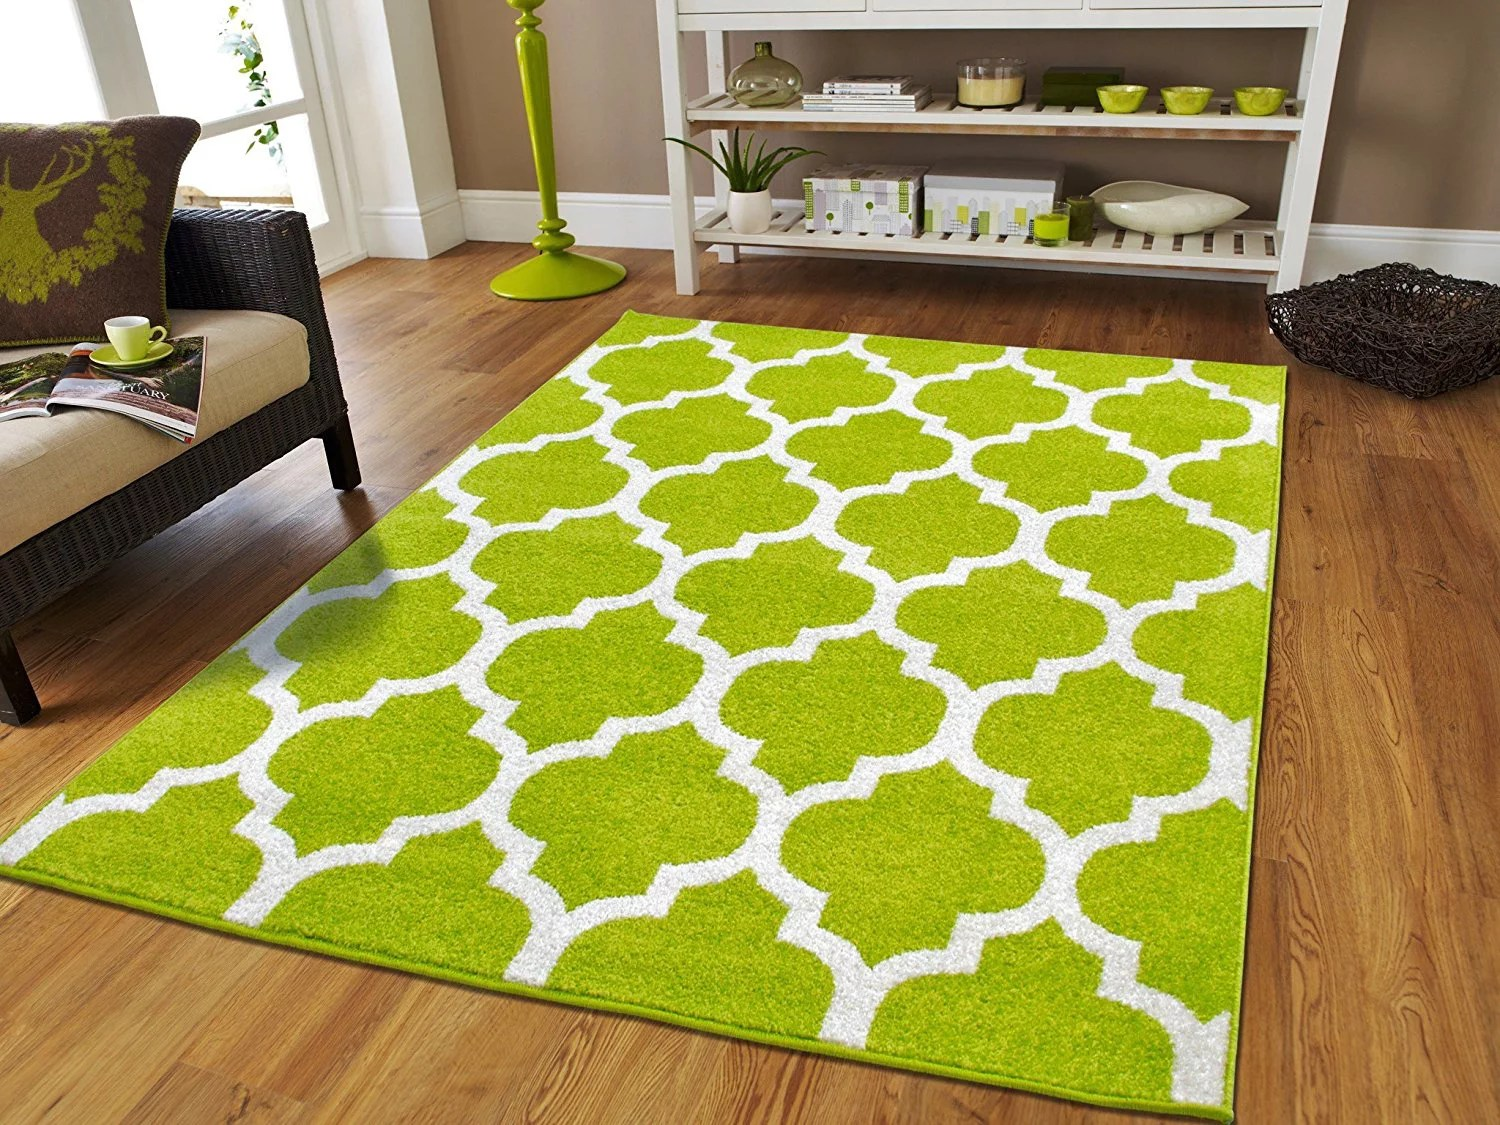 Huge Rugs For Living Room Large Modern Green Area Rug For Bedrooms Green Rugs On Clearance 8x11 Rugs For Living Room And Dining Area 8x10 Carpet